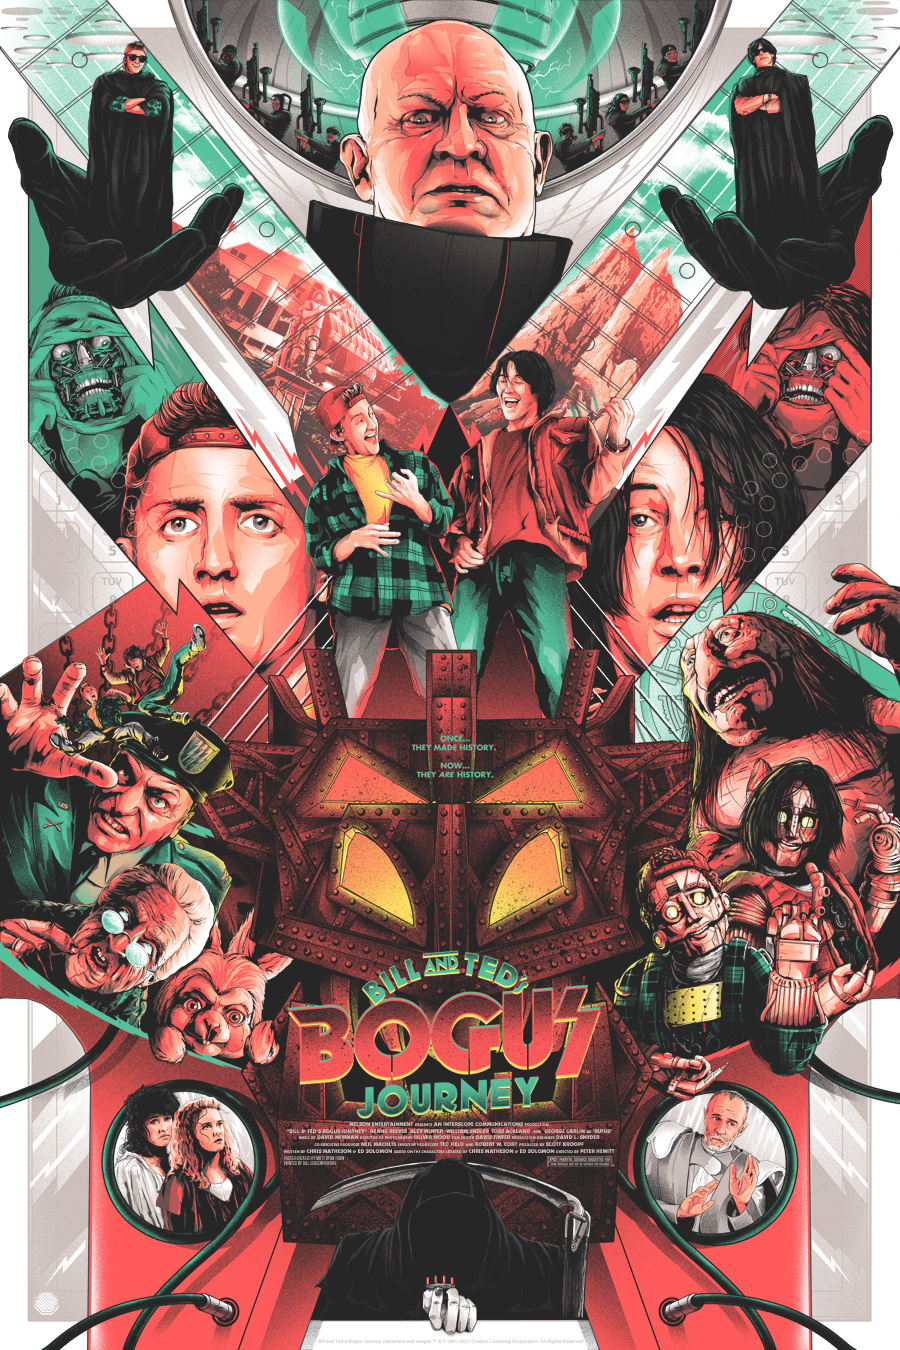 """Bill and Ted's Bogus Journey"" by Matt Ryan Tobin"